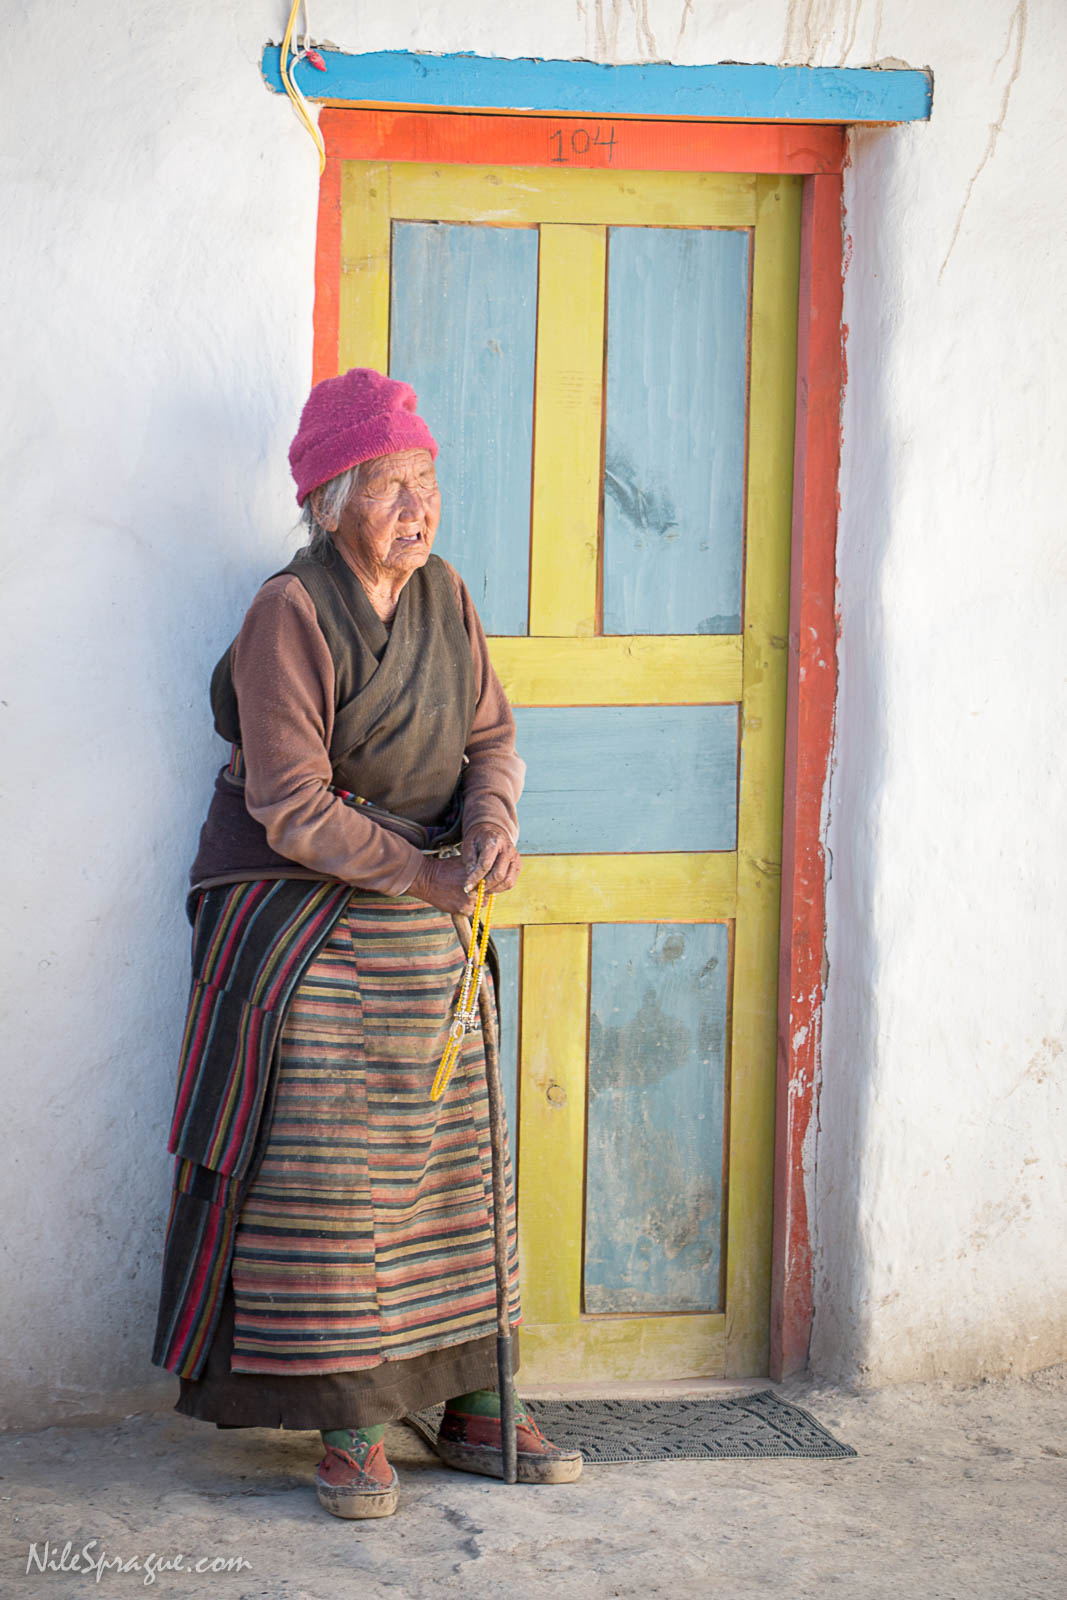 trek photo essay journey to the clouds ninety two year old blind great grandmother standing in the courtyard of her grandson s